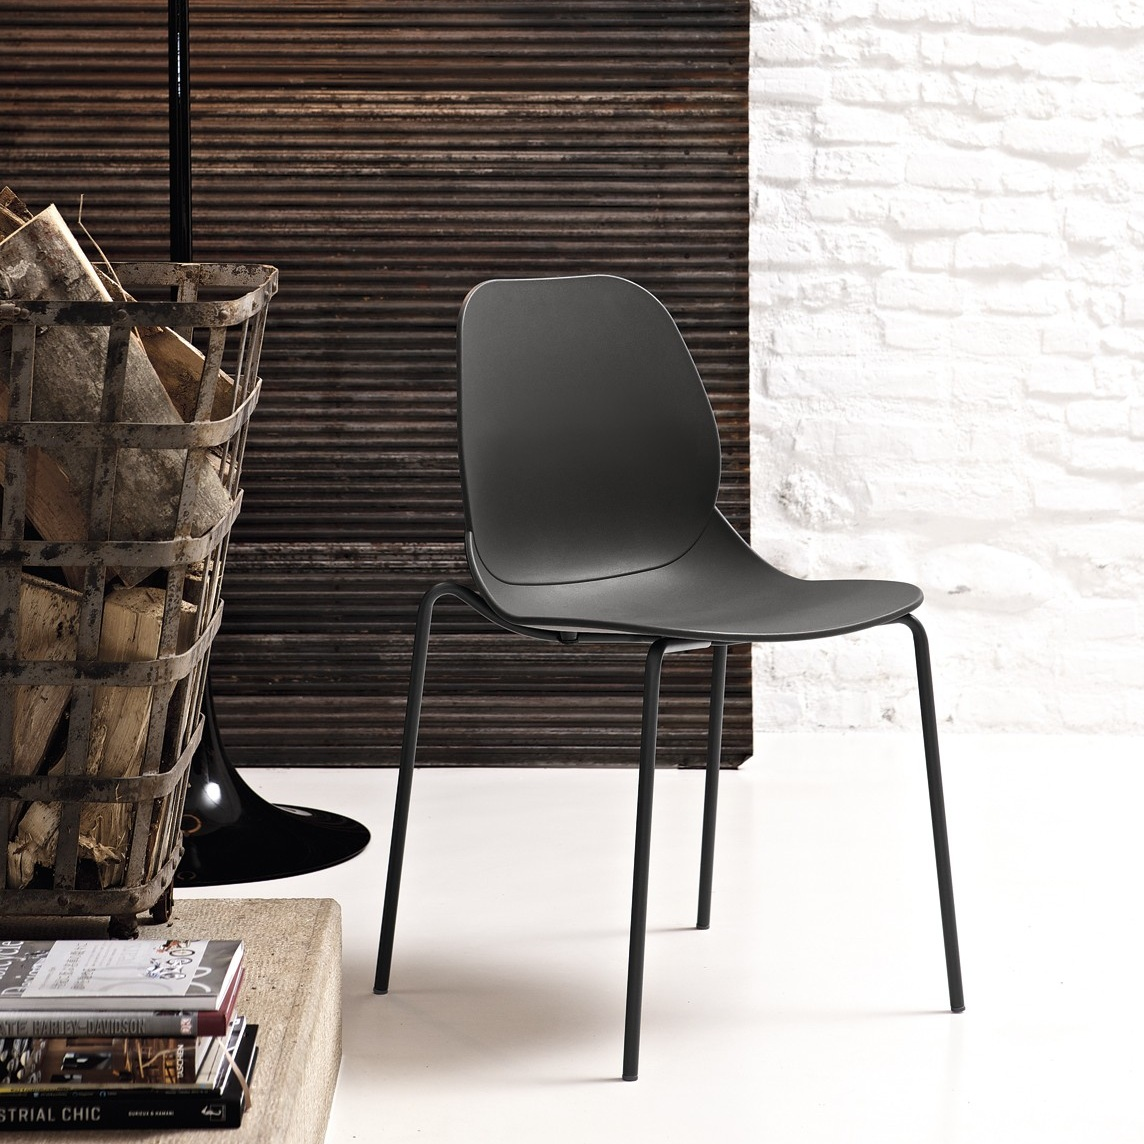 Bontempi Casa April Dining Chair - £139 - The closest anything comes to the Calligaris Bess, but still a slightly higher price tag. Again made from polypropylene, this dining chair is light weight and suitable for outdoor use. It's elegant but thoughtful design means it's stack-able, perfect for any busy family. Still at a reasonable price of £139 per chair, it still doesn't break the bank for Europe's greatest furniture brands.